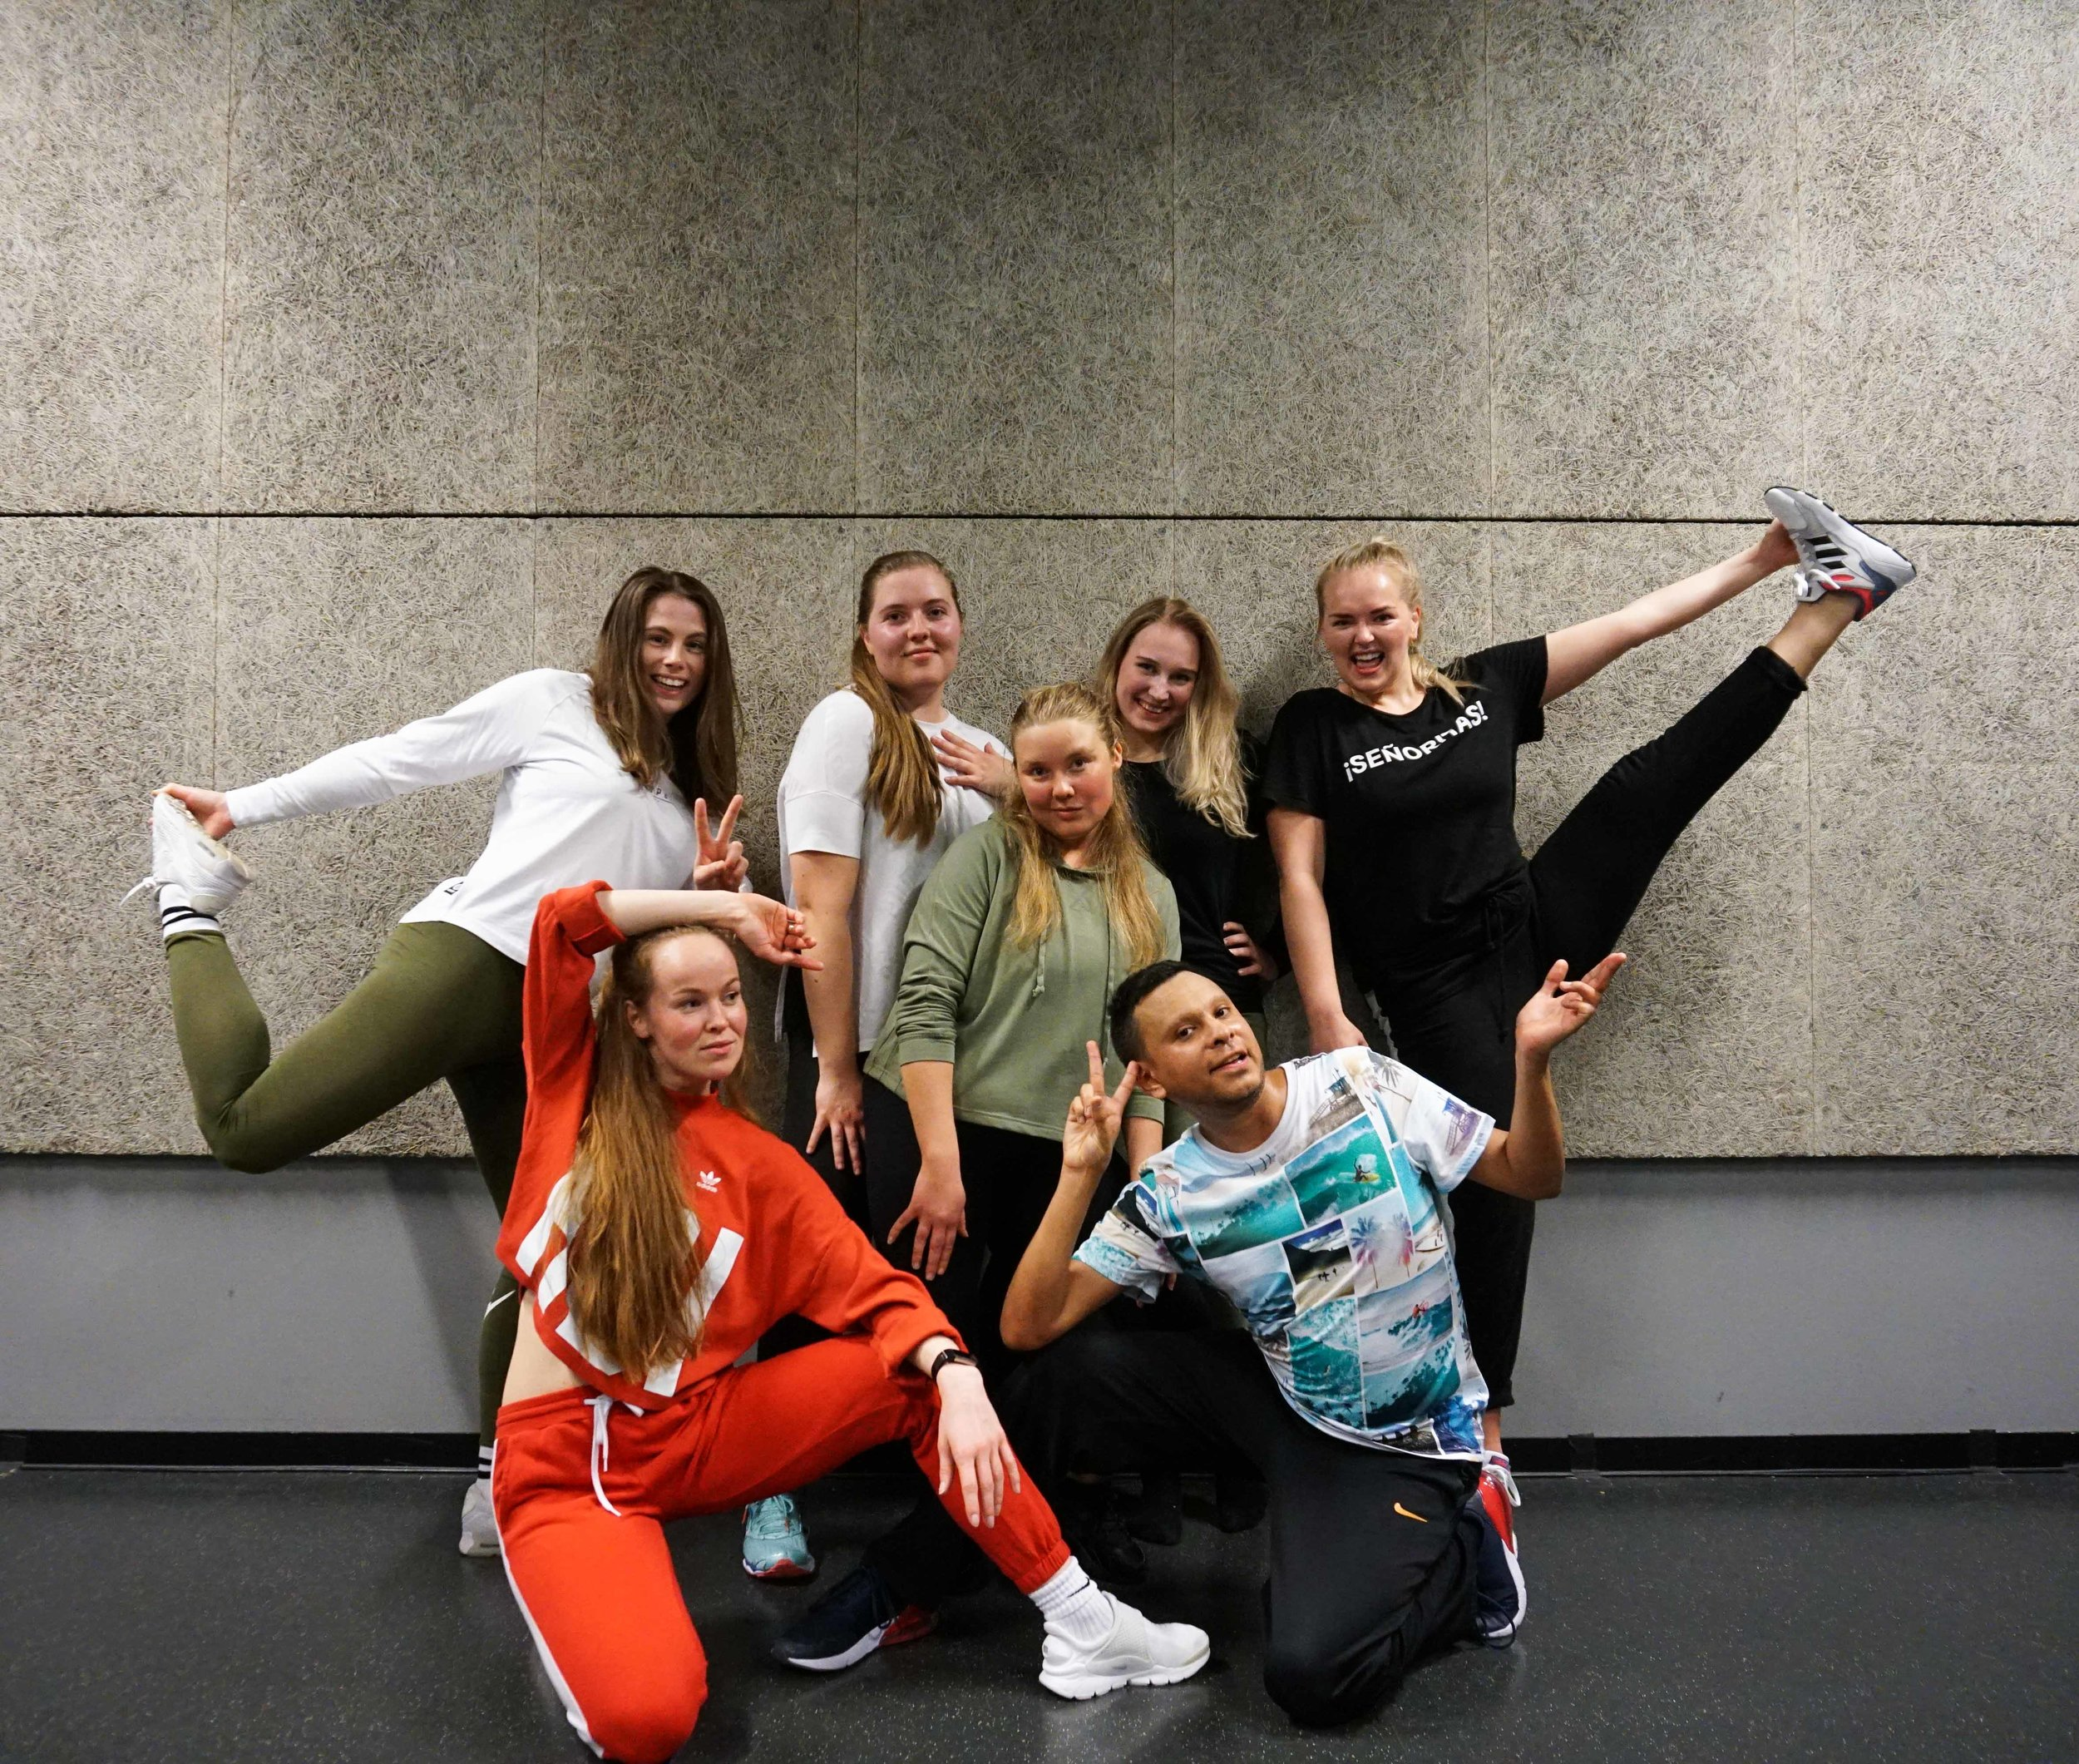 Female dancehall workshop